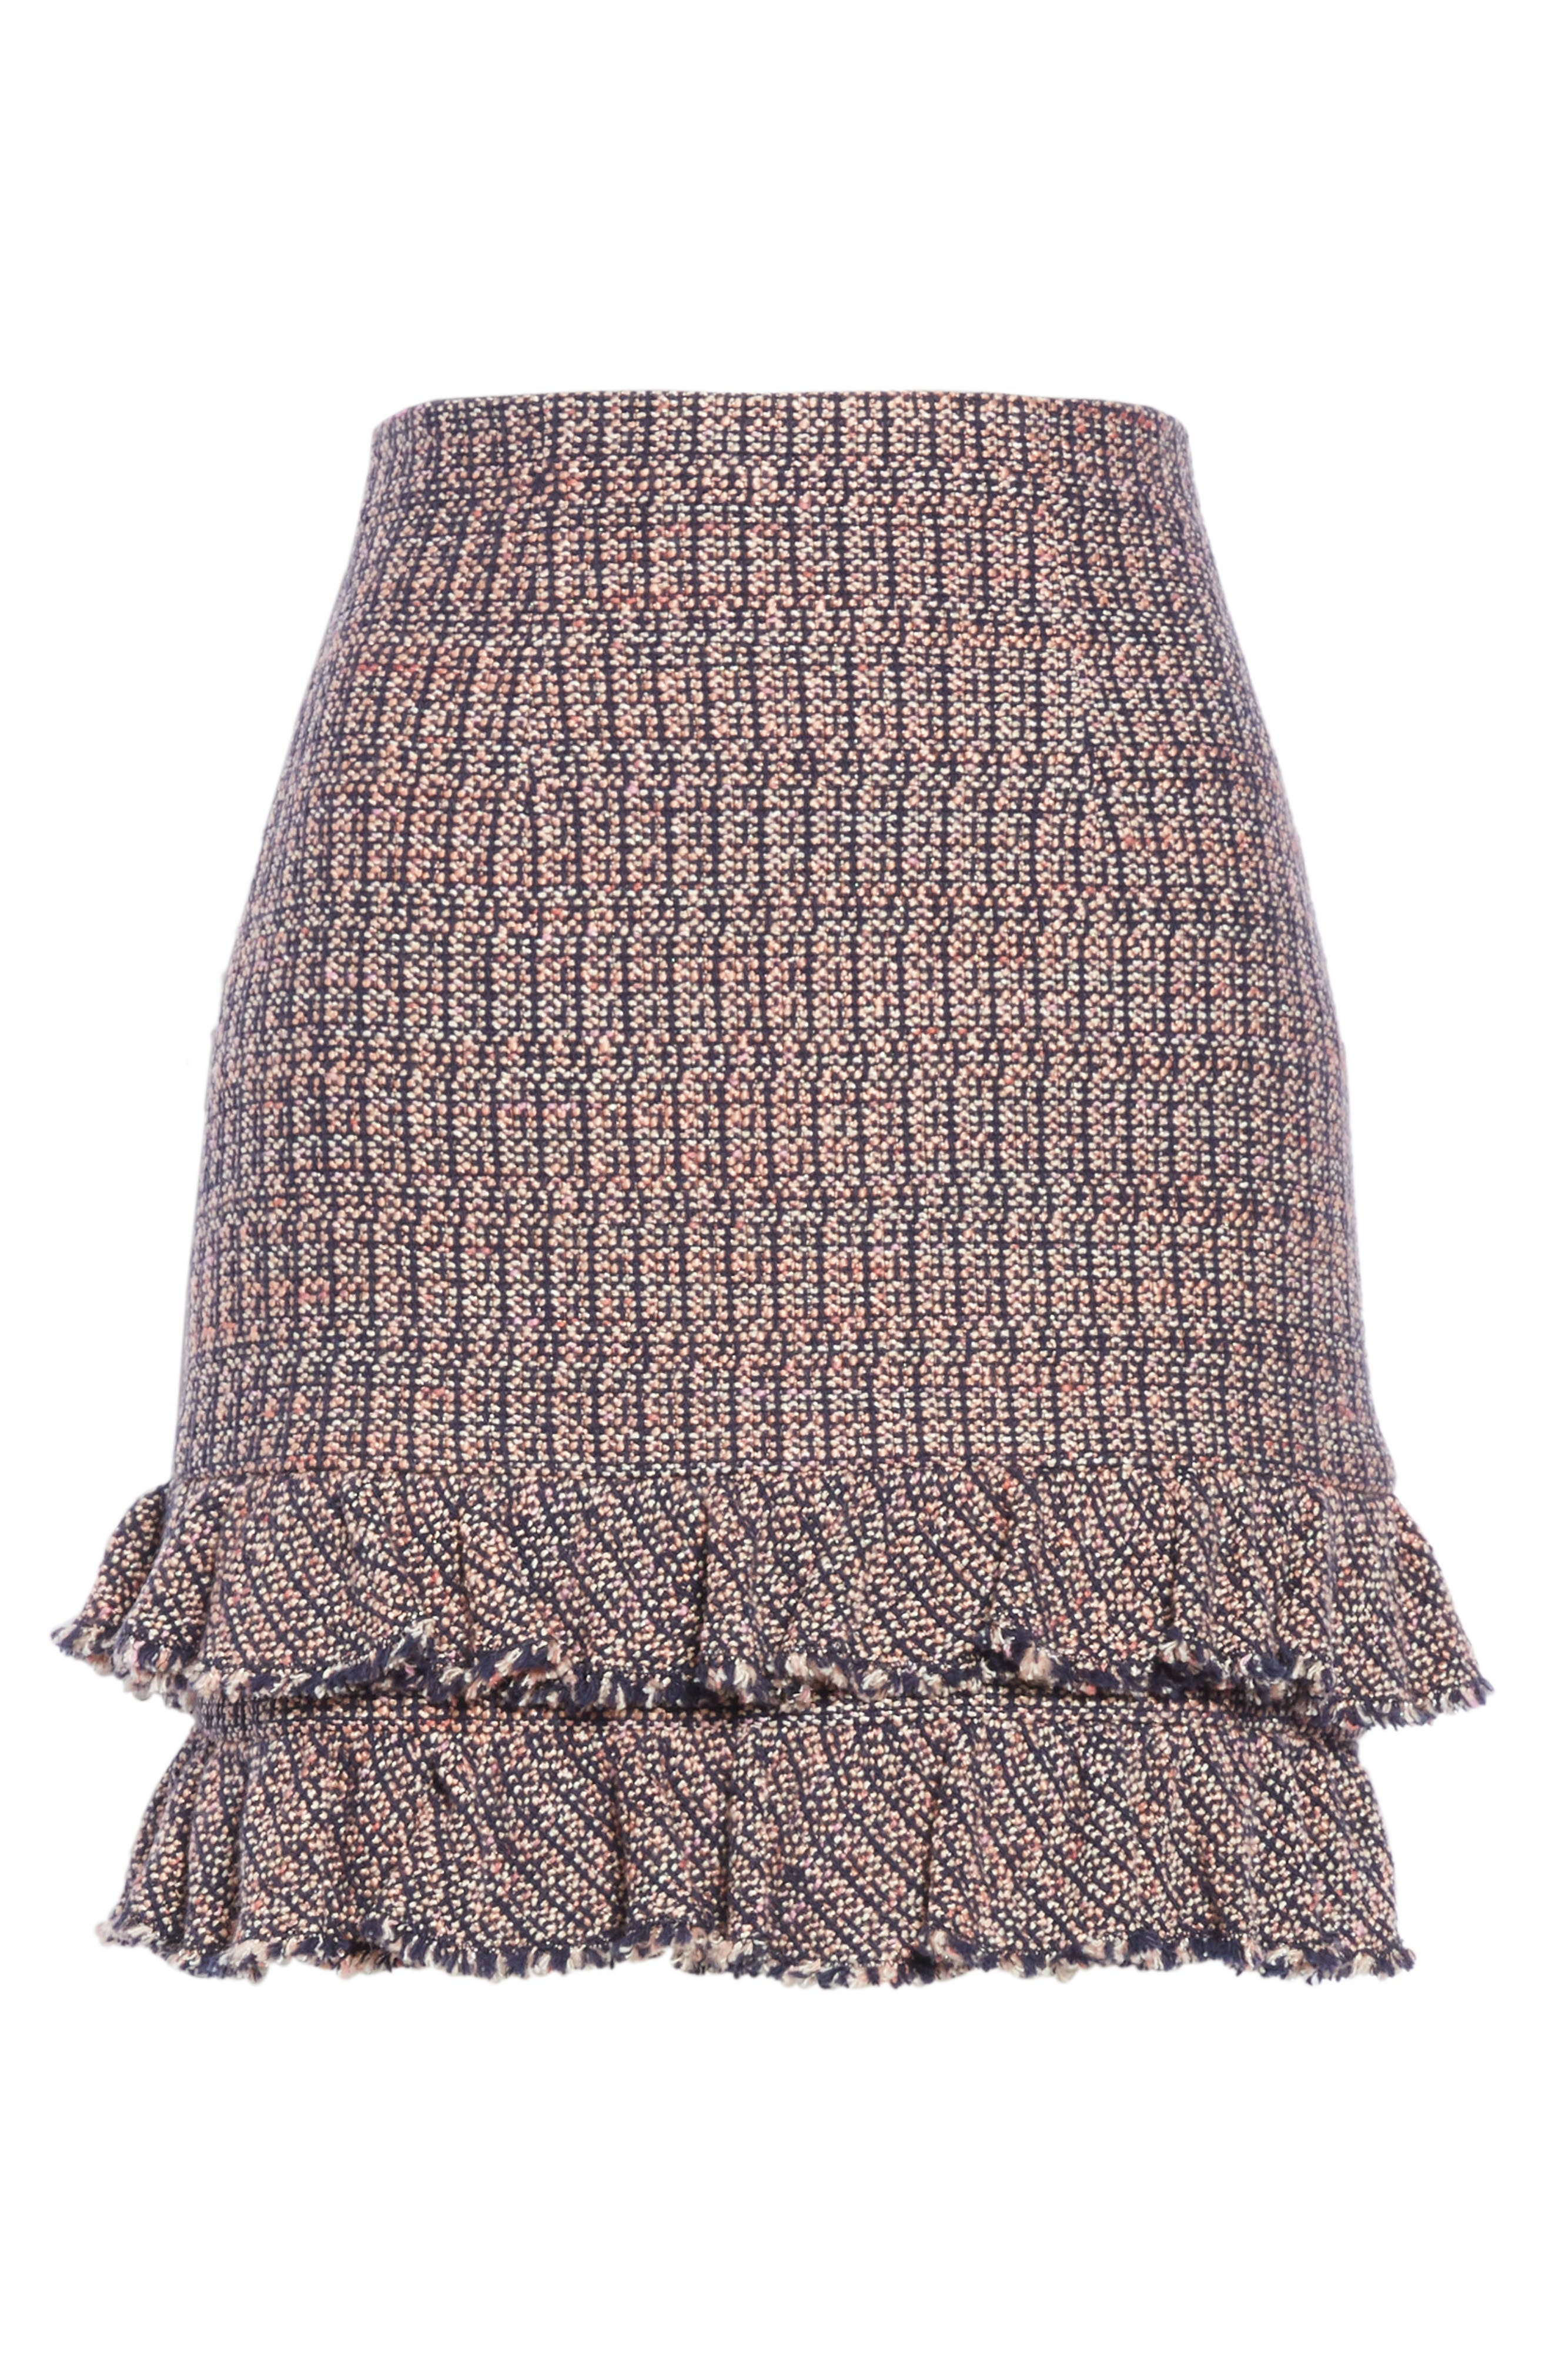 REBECCA TAYLOR, Ruffle Hem Tweed Miniskirt, Alternate thumbnail 6, color, PINK/ NAVY COMBO